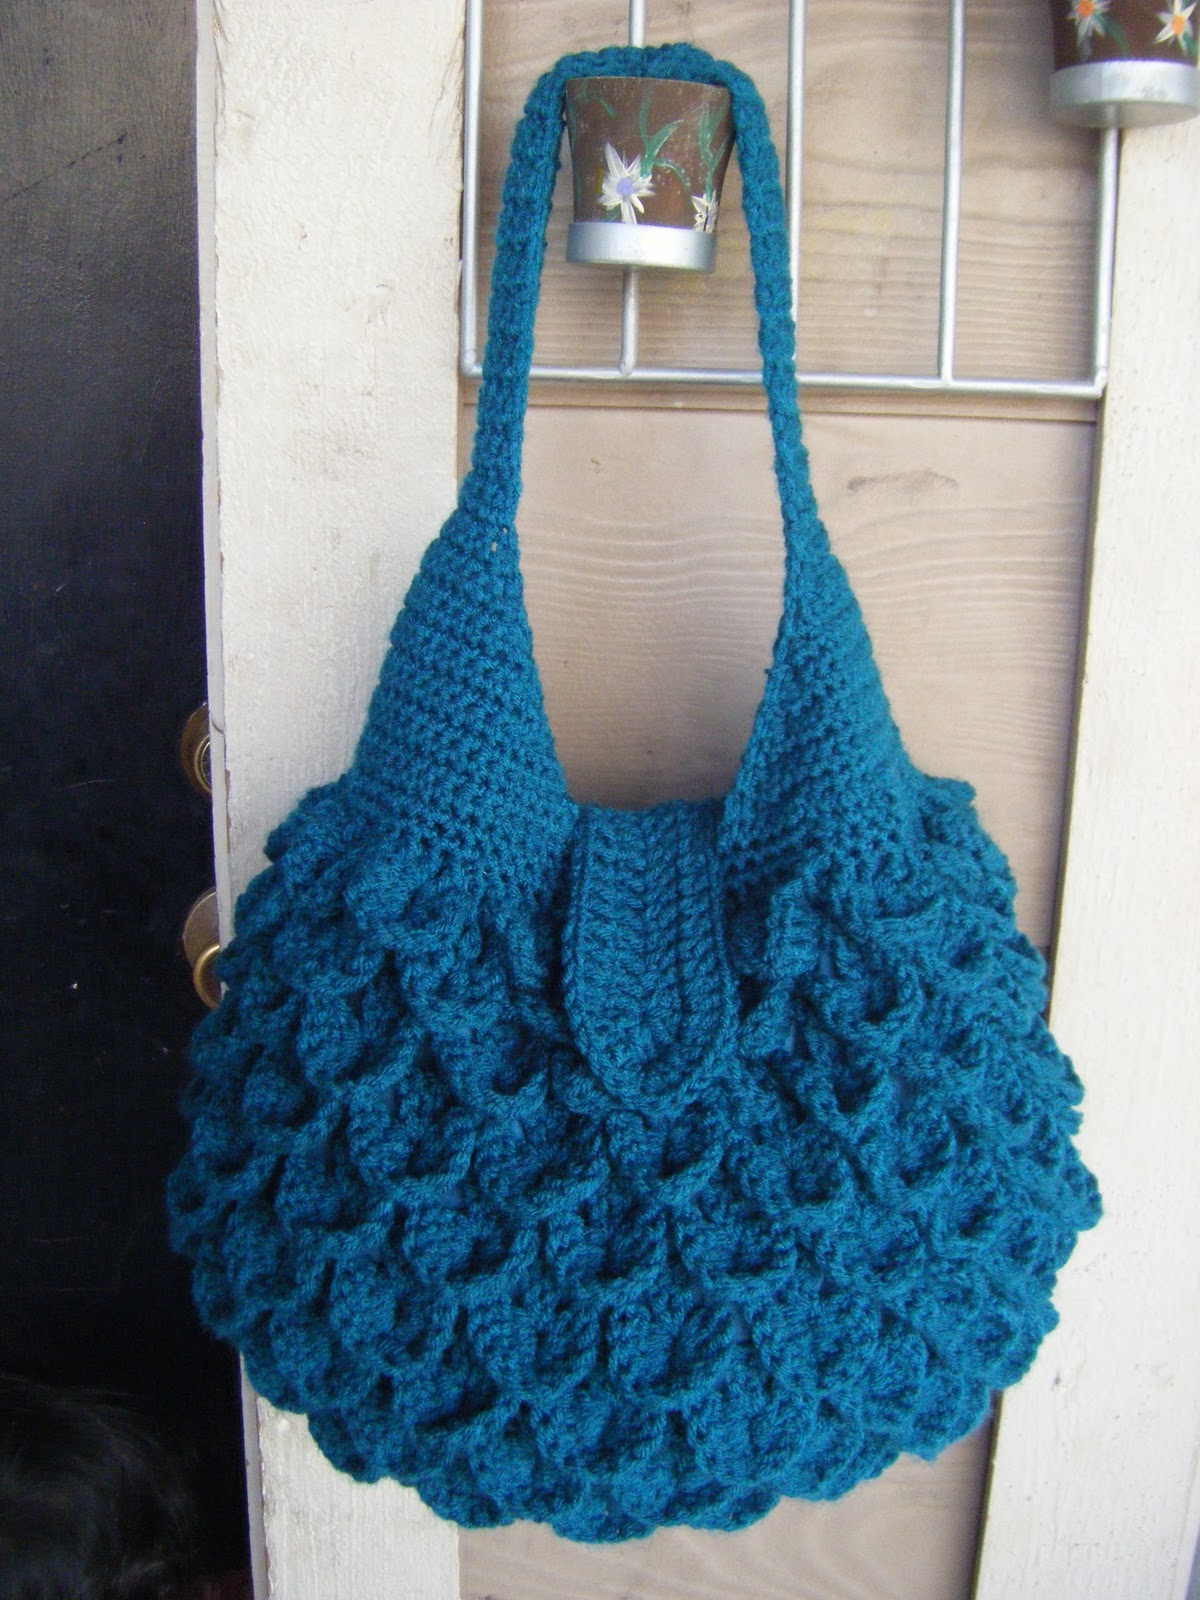 Free Patterns For Handbags : Free Purse Crochet Patterns, Free Bag Crochet Patterns from our